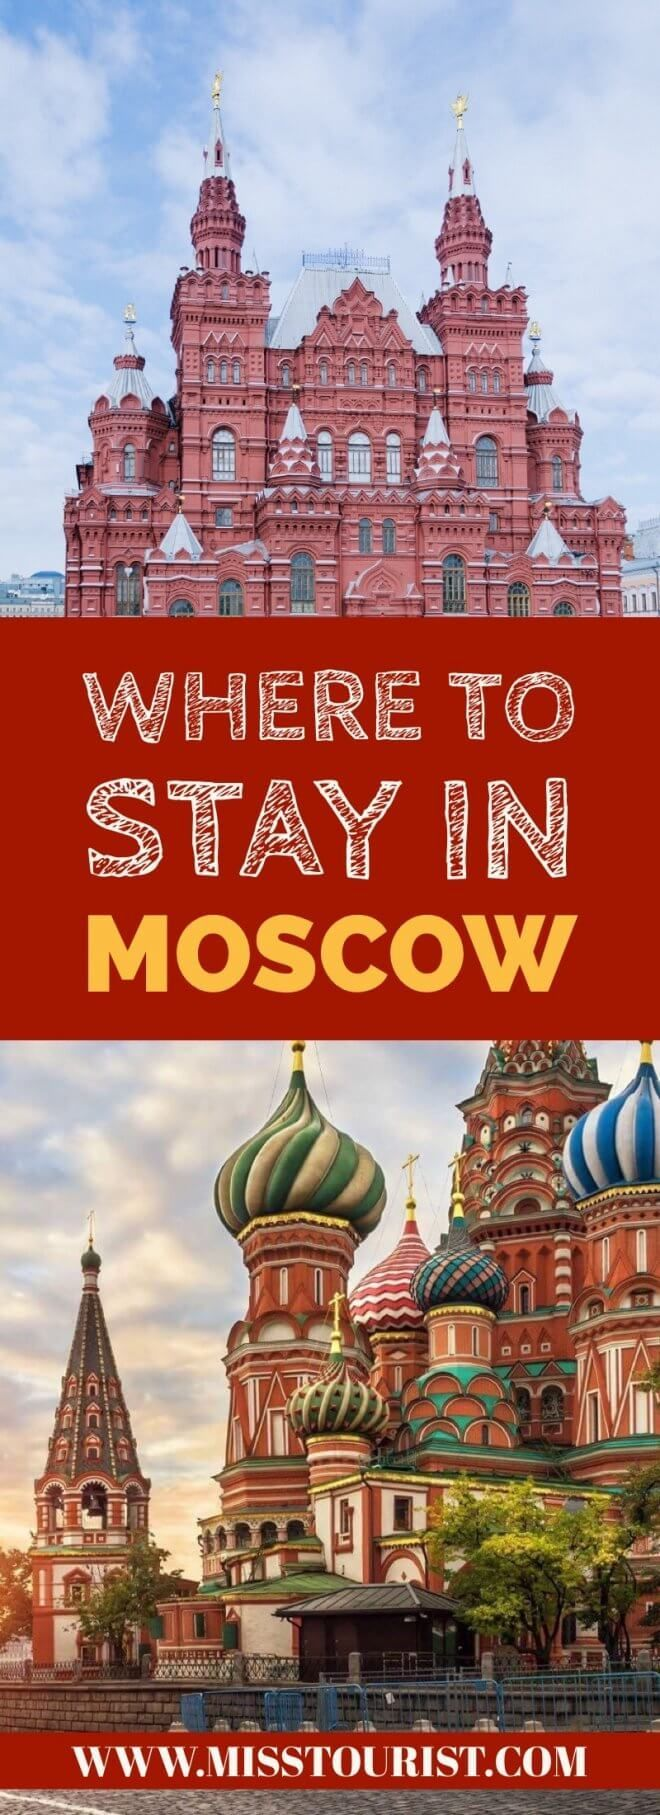 Moscow is a huge city that offers a wide range of things to do and many places to visit. FIFA World Cup is going to take place in Russia this year and most of the matches will happen in Moscow. Find the best hotel by reading this article! But be fast as the best ones will already be occupied!  Moscow, Things To Do In, Russia, World Cup, Travel, Mule, Winter, Photography, City, Metro, Architecture, Street, Restaurant, Cafe, Kremlin, Hotel, Map, Aesthetic